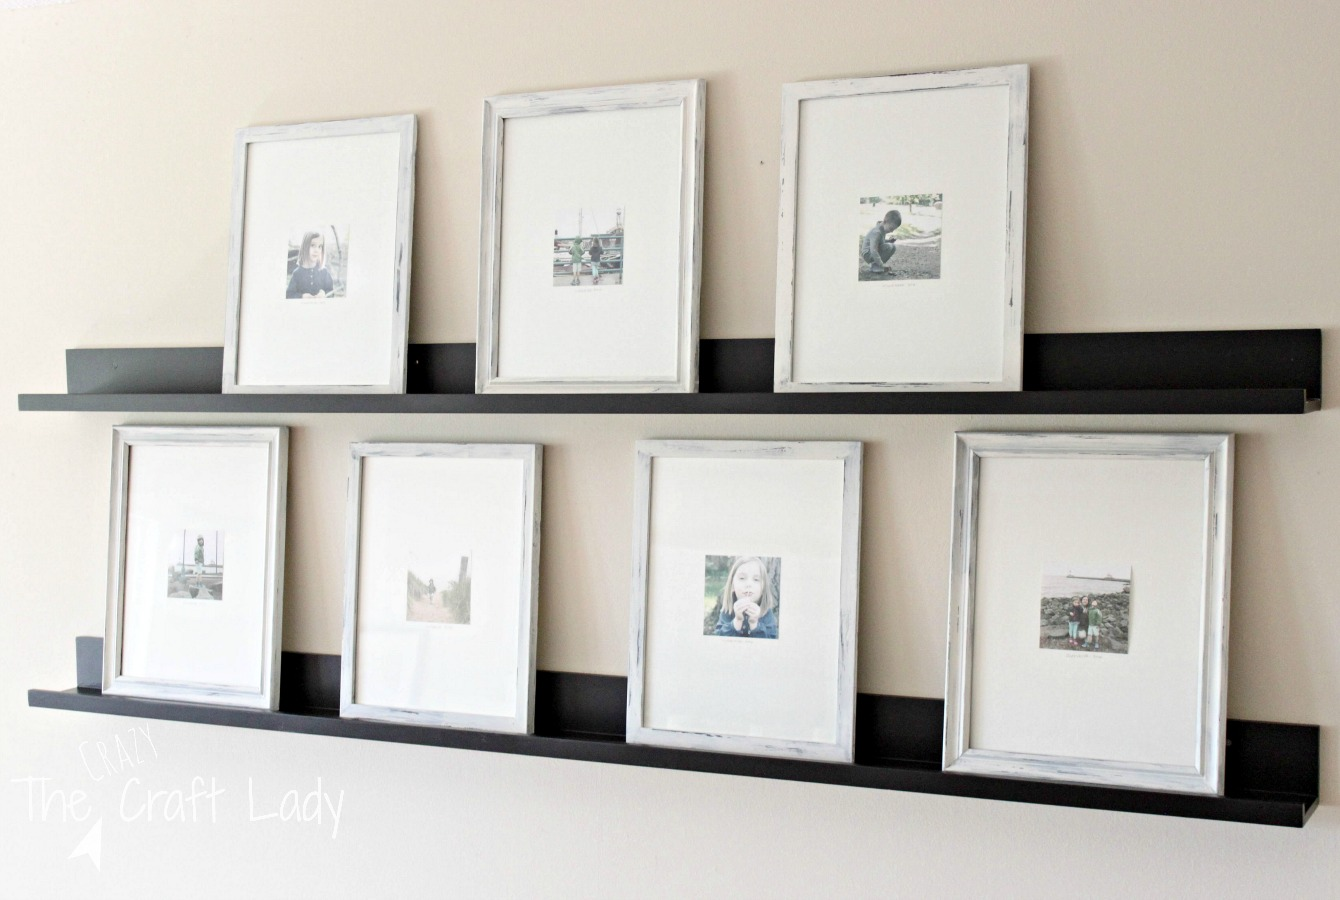 DIY distressed painted picture frames for a gallery wall